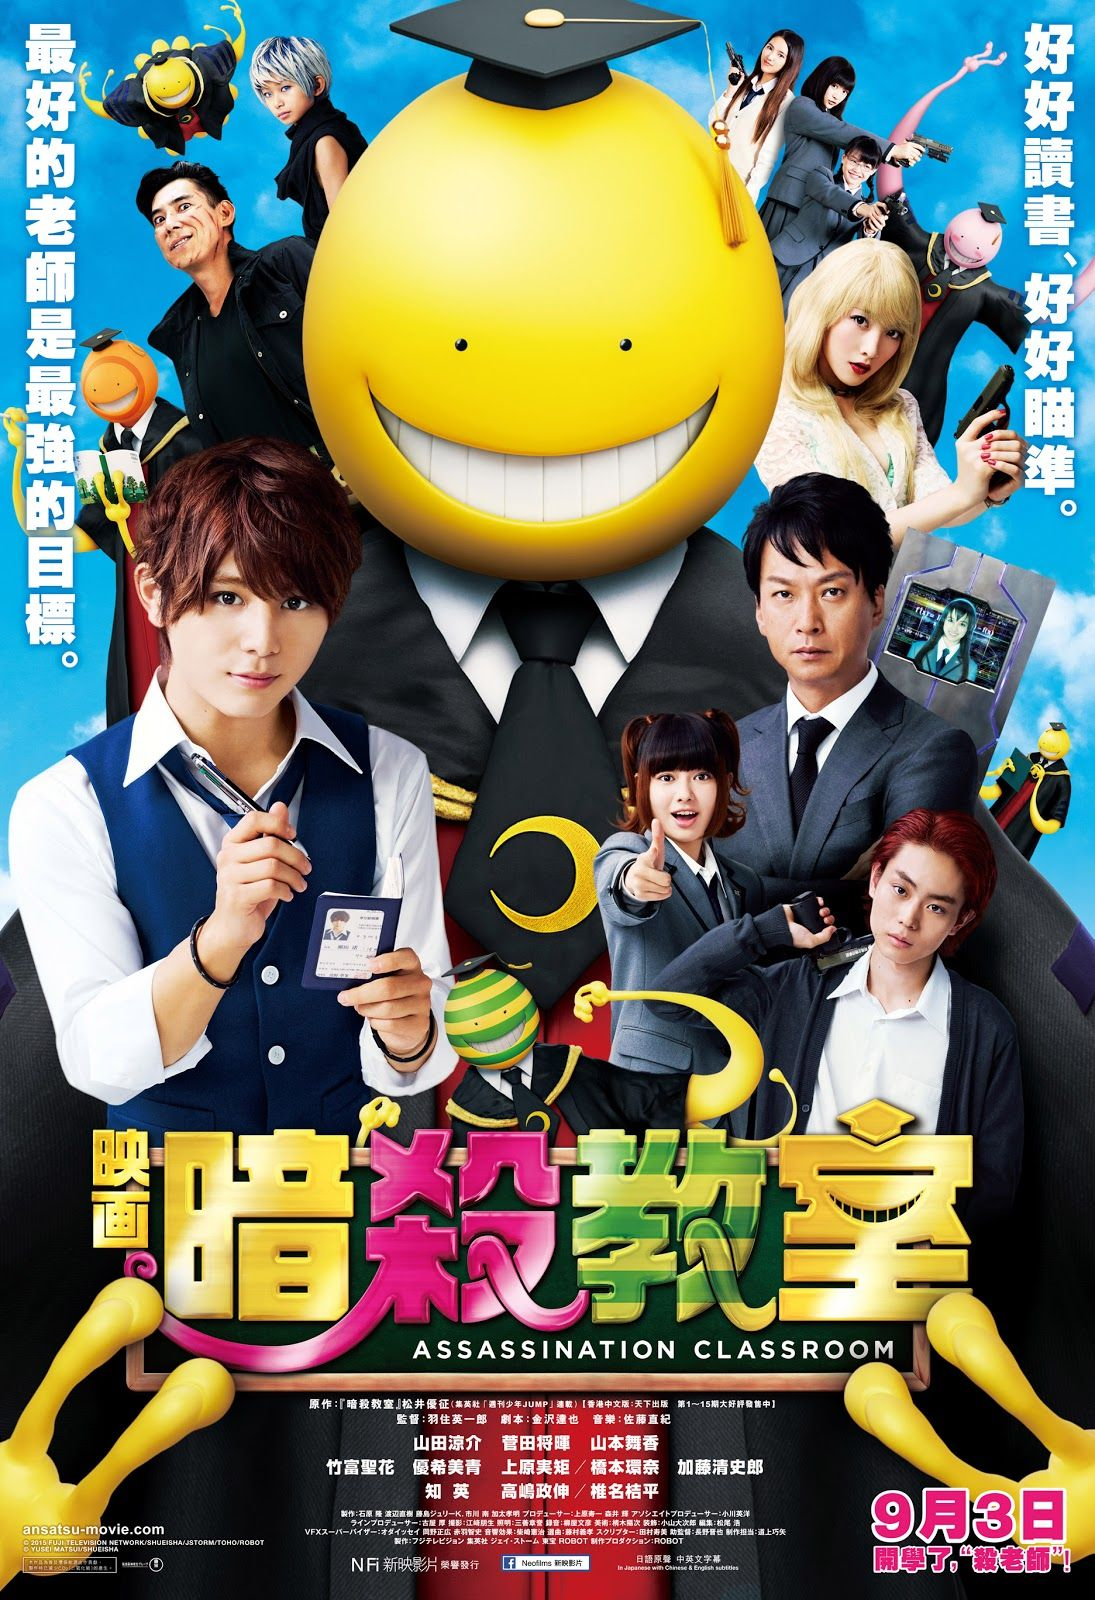 Assassination Classroom Movie Sub Indo : assassination, classroom, movie, Assassination, Classroom, Action, Subtitle, Indonesia, วันจบการศึกษา,, อะนิเมะ,, คอสเพลย์